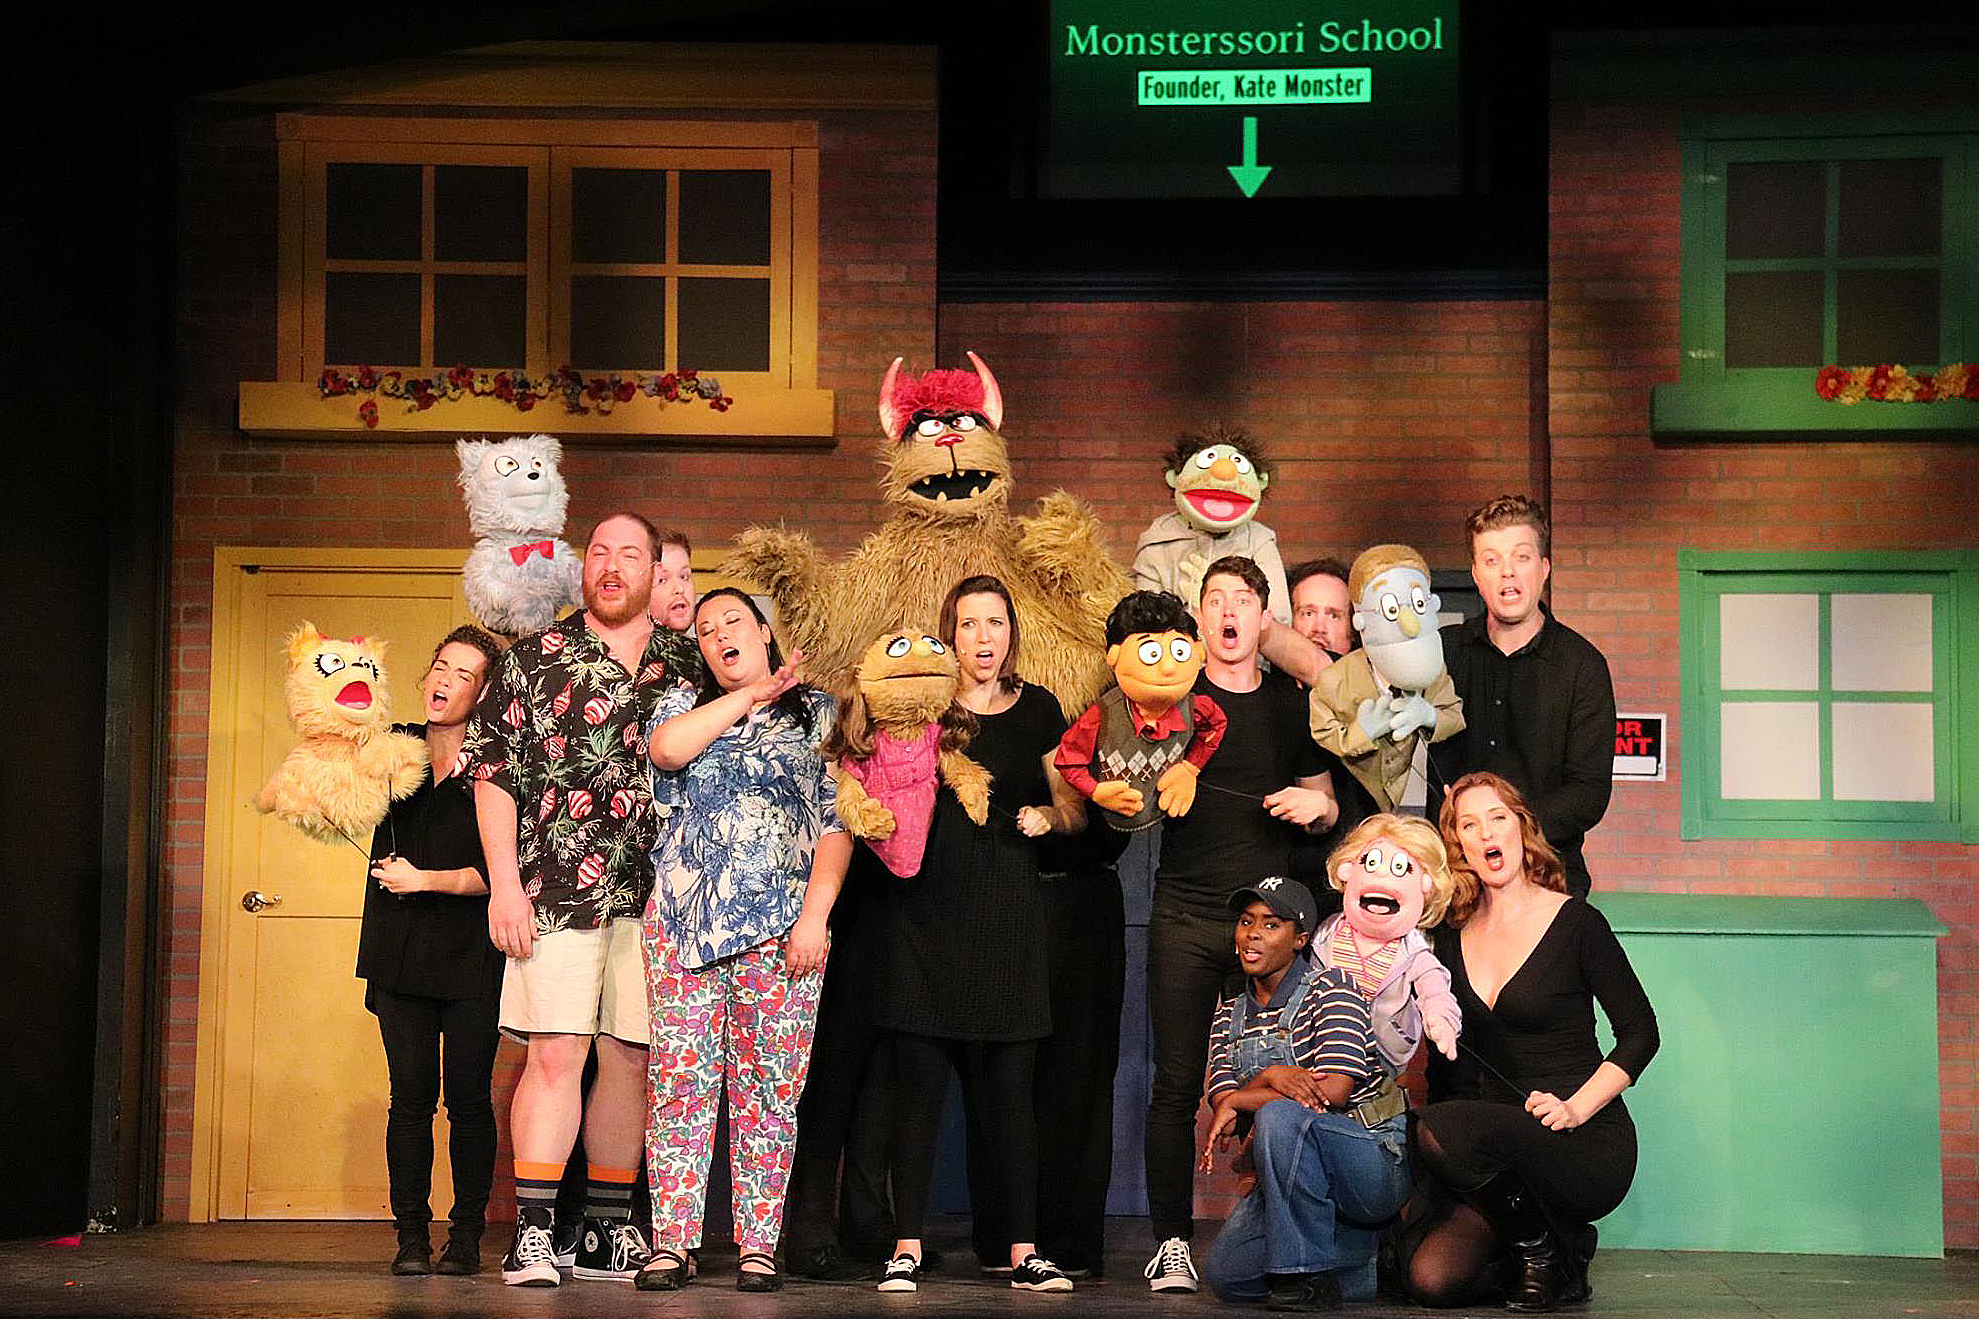 Avenue Q at the Gargaro Theater